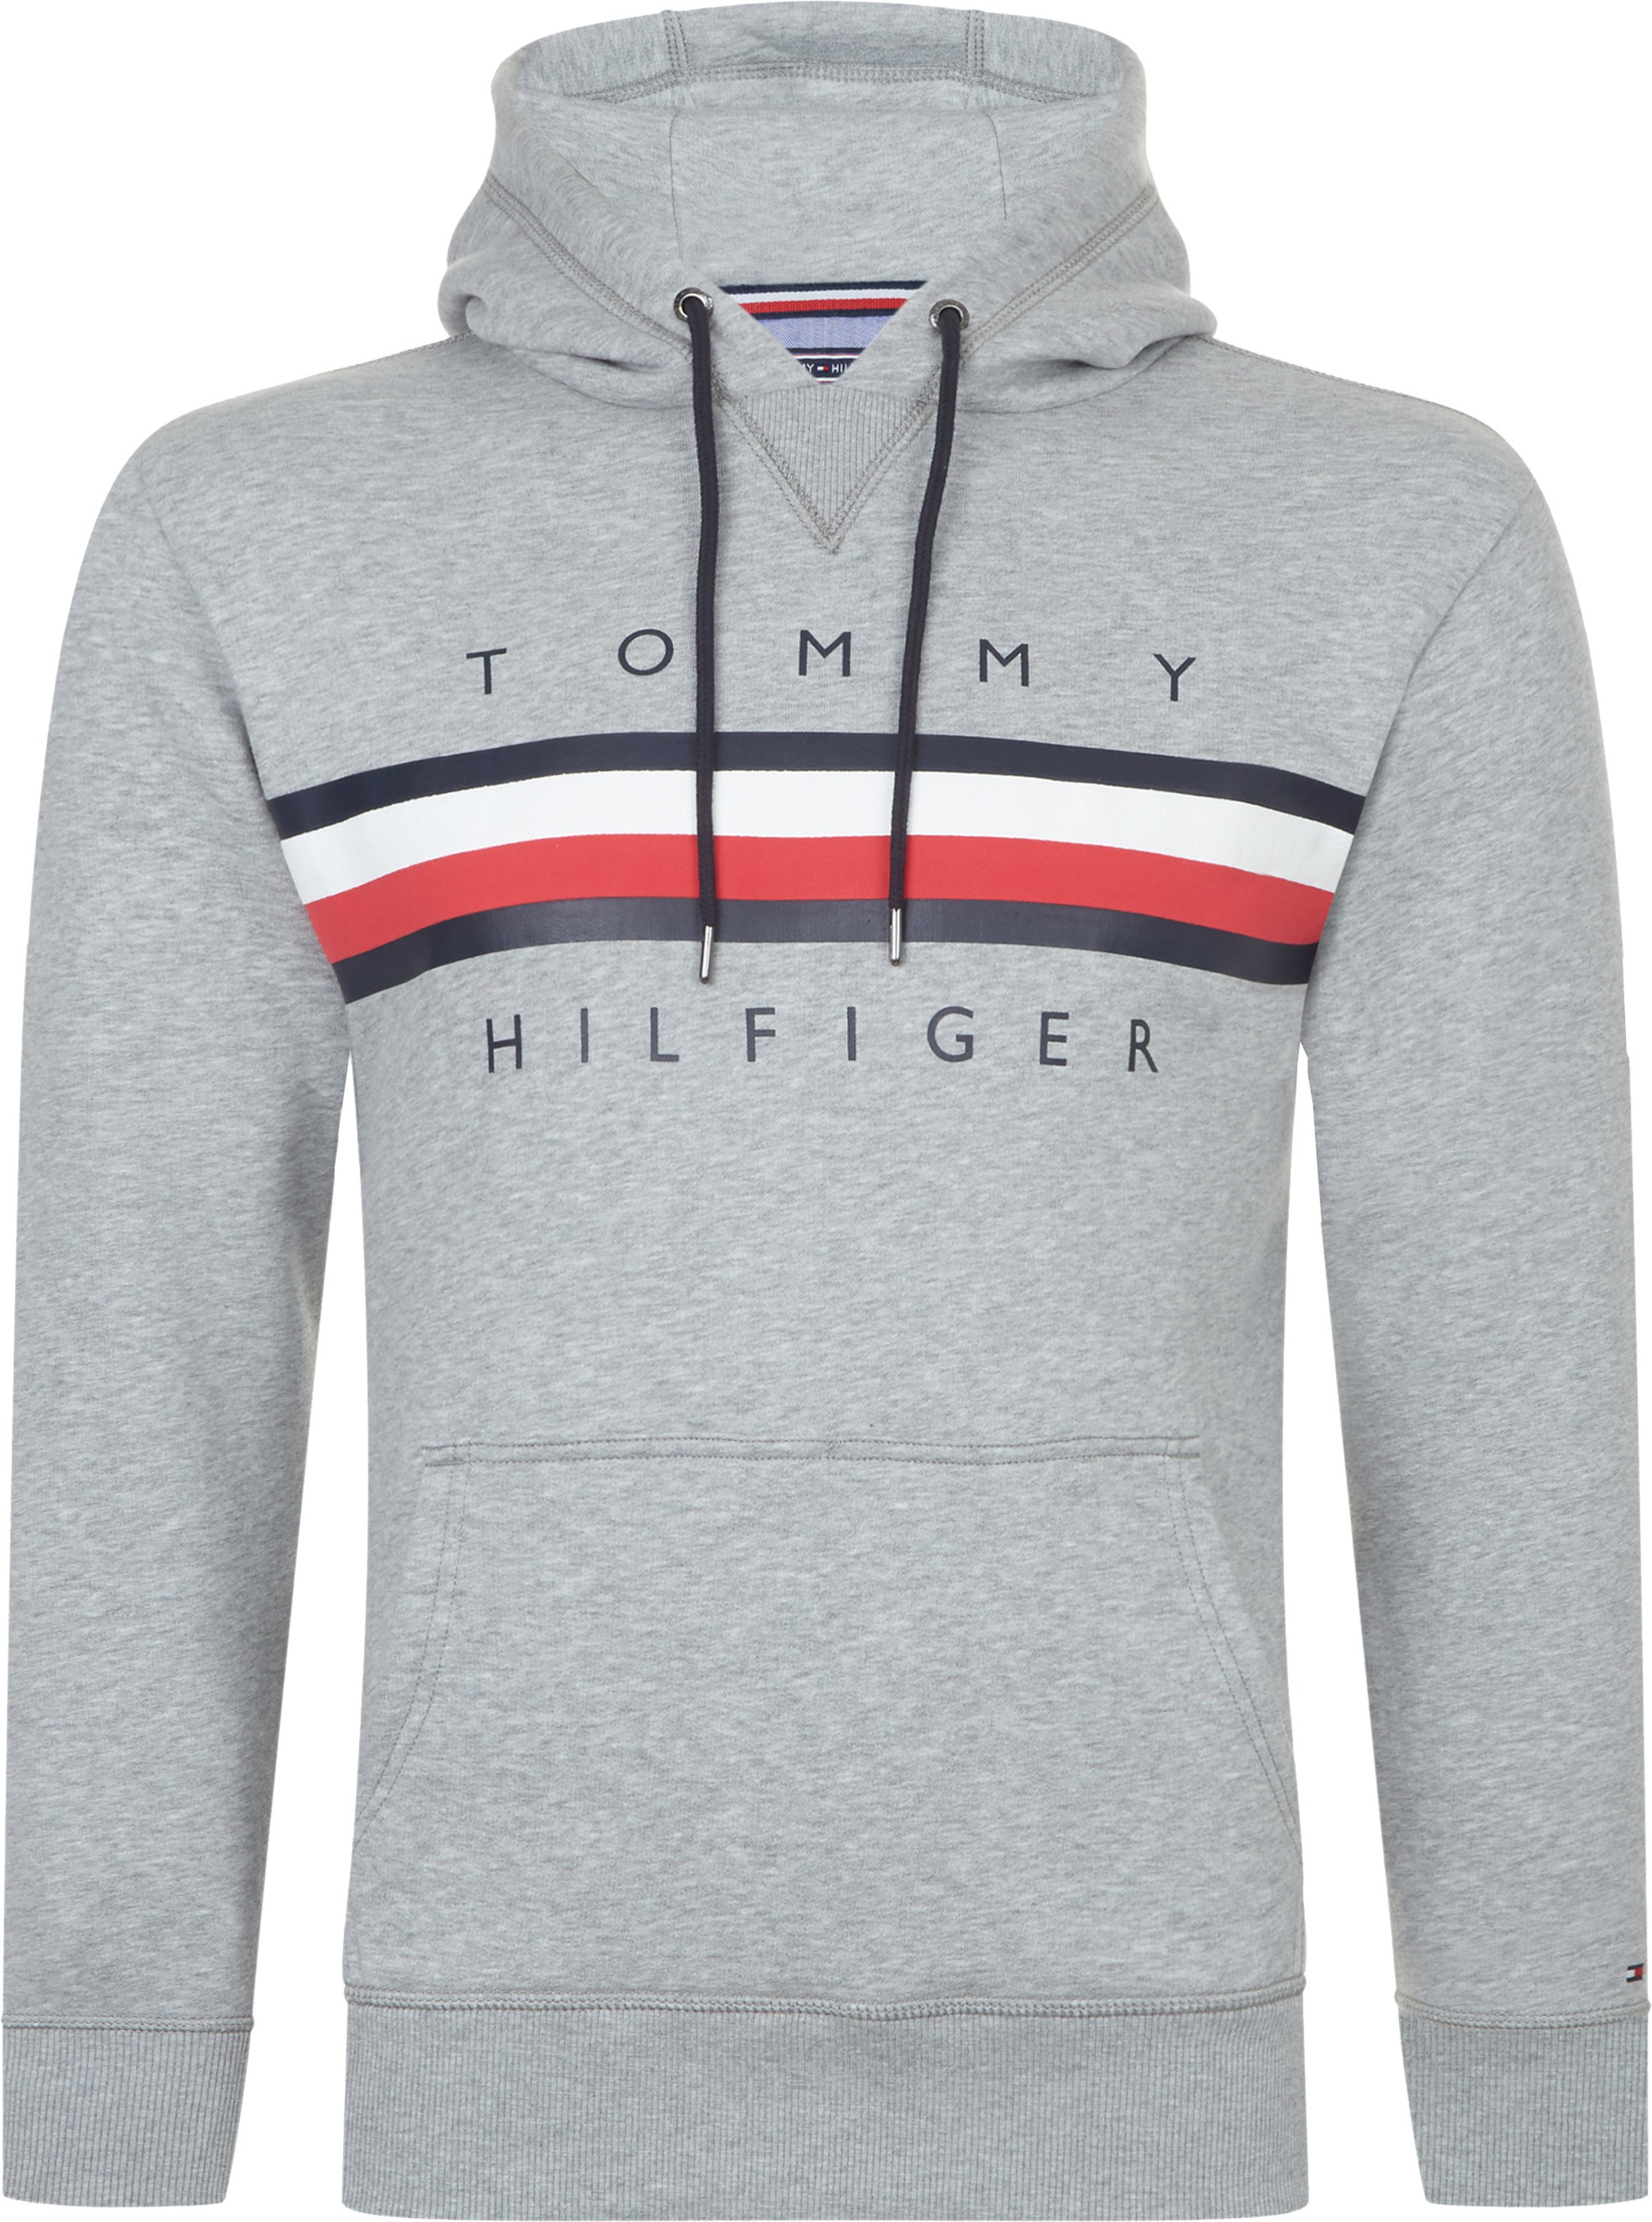 Tommy Hilfiger Hoodie Logo Grey MW0MW07947-501 order online   Suitable d8721b98d5